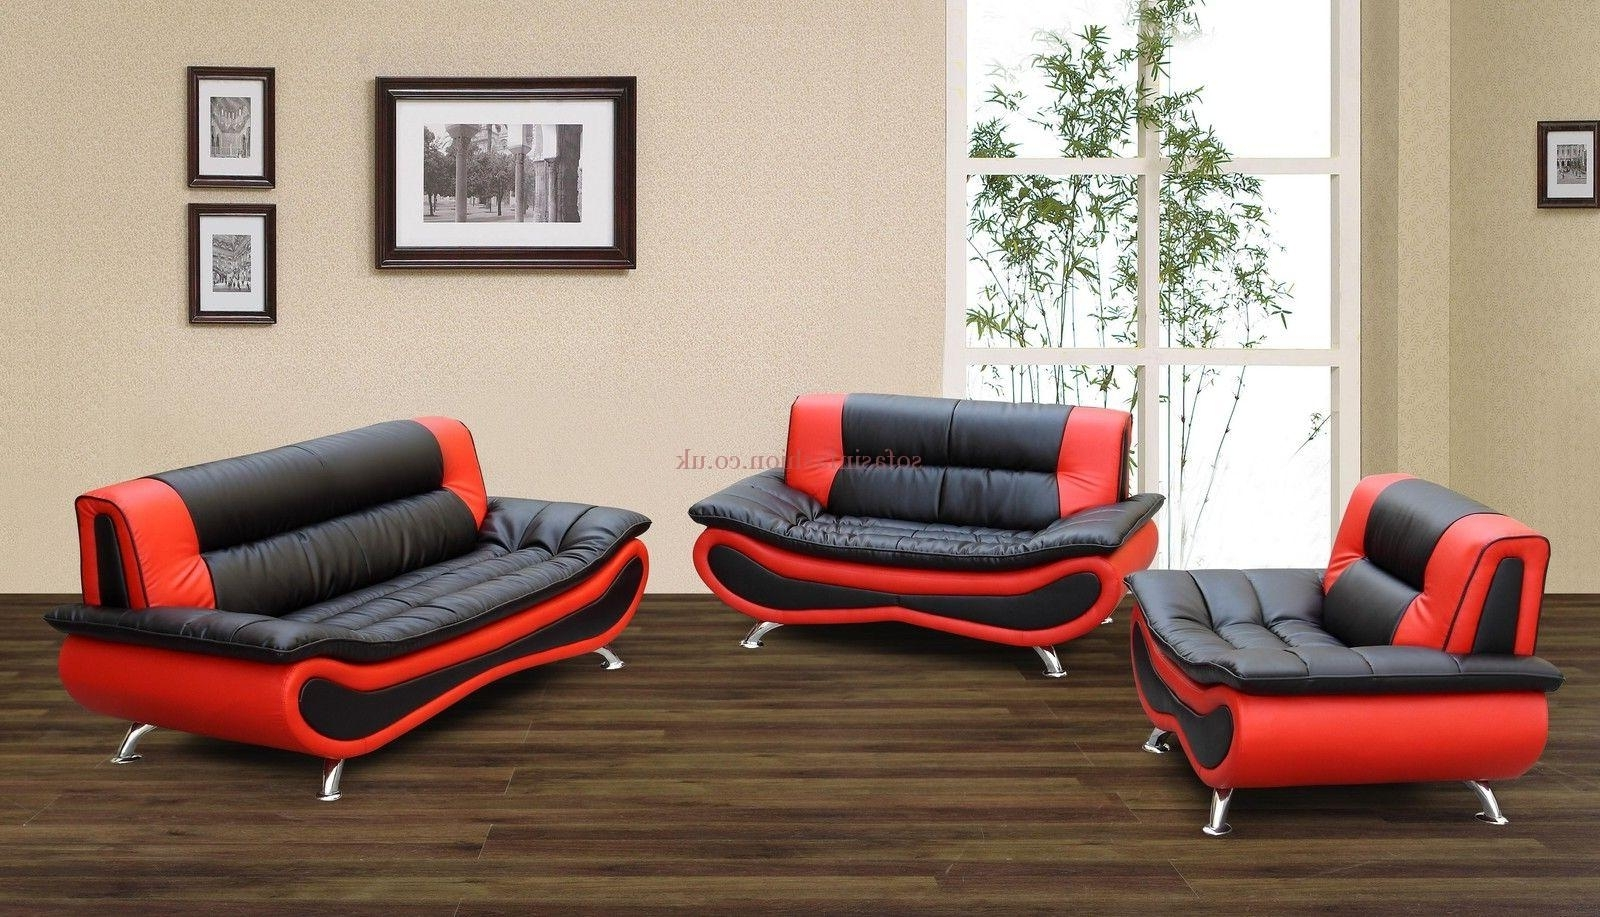 Red And Black Sofas With Regard To Most Up To Date Leather Sofa Sale Black Red Napoli Faux Sofas – Dma Homes (View 12 of 20)